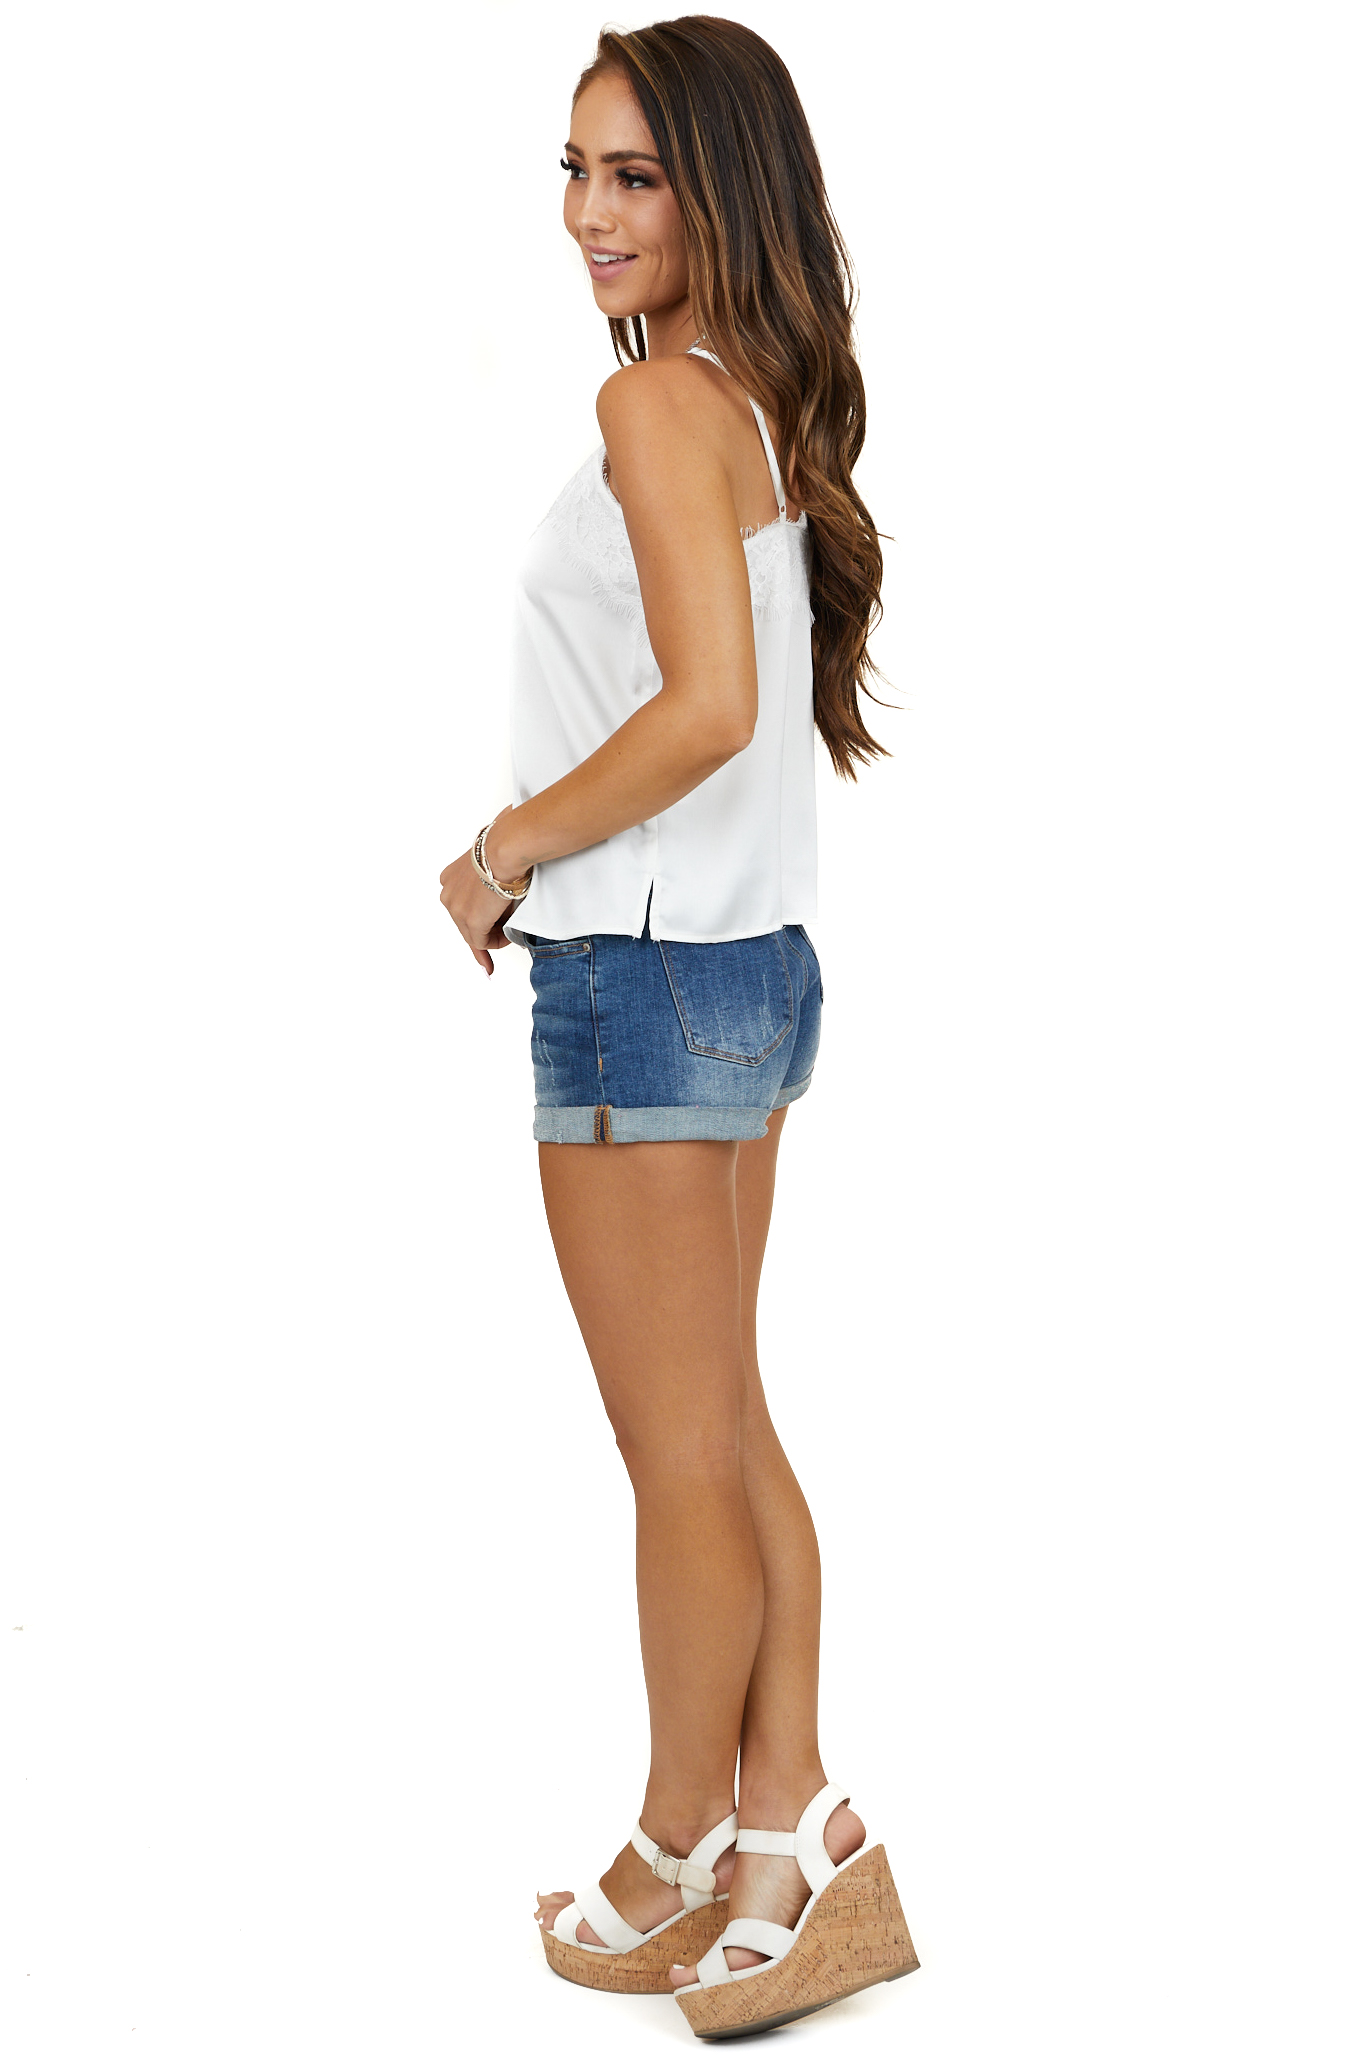 Ivory Silky Tank Top with Button and Lace Details